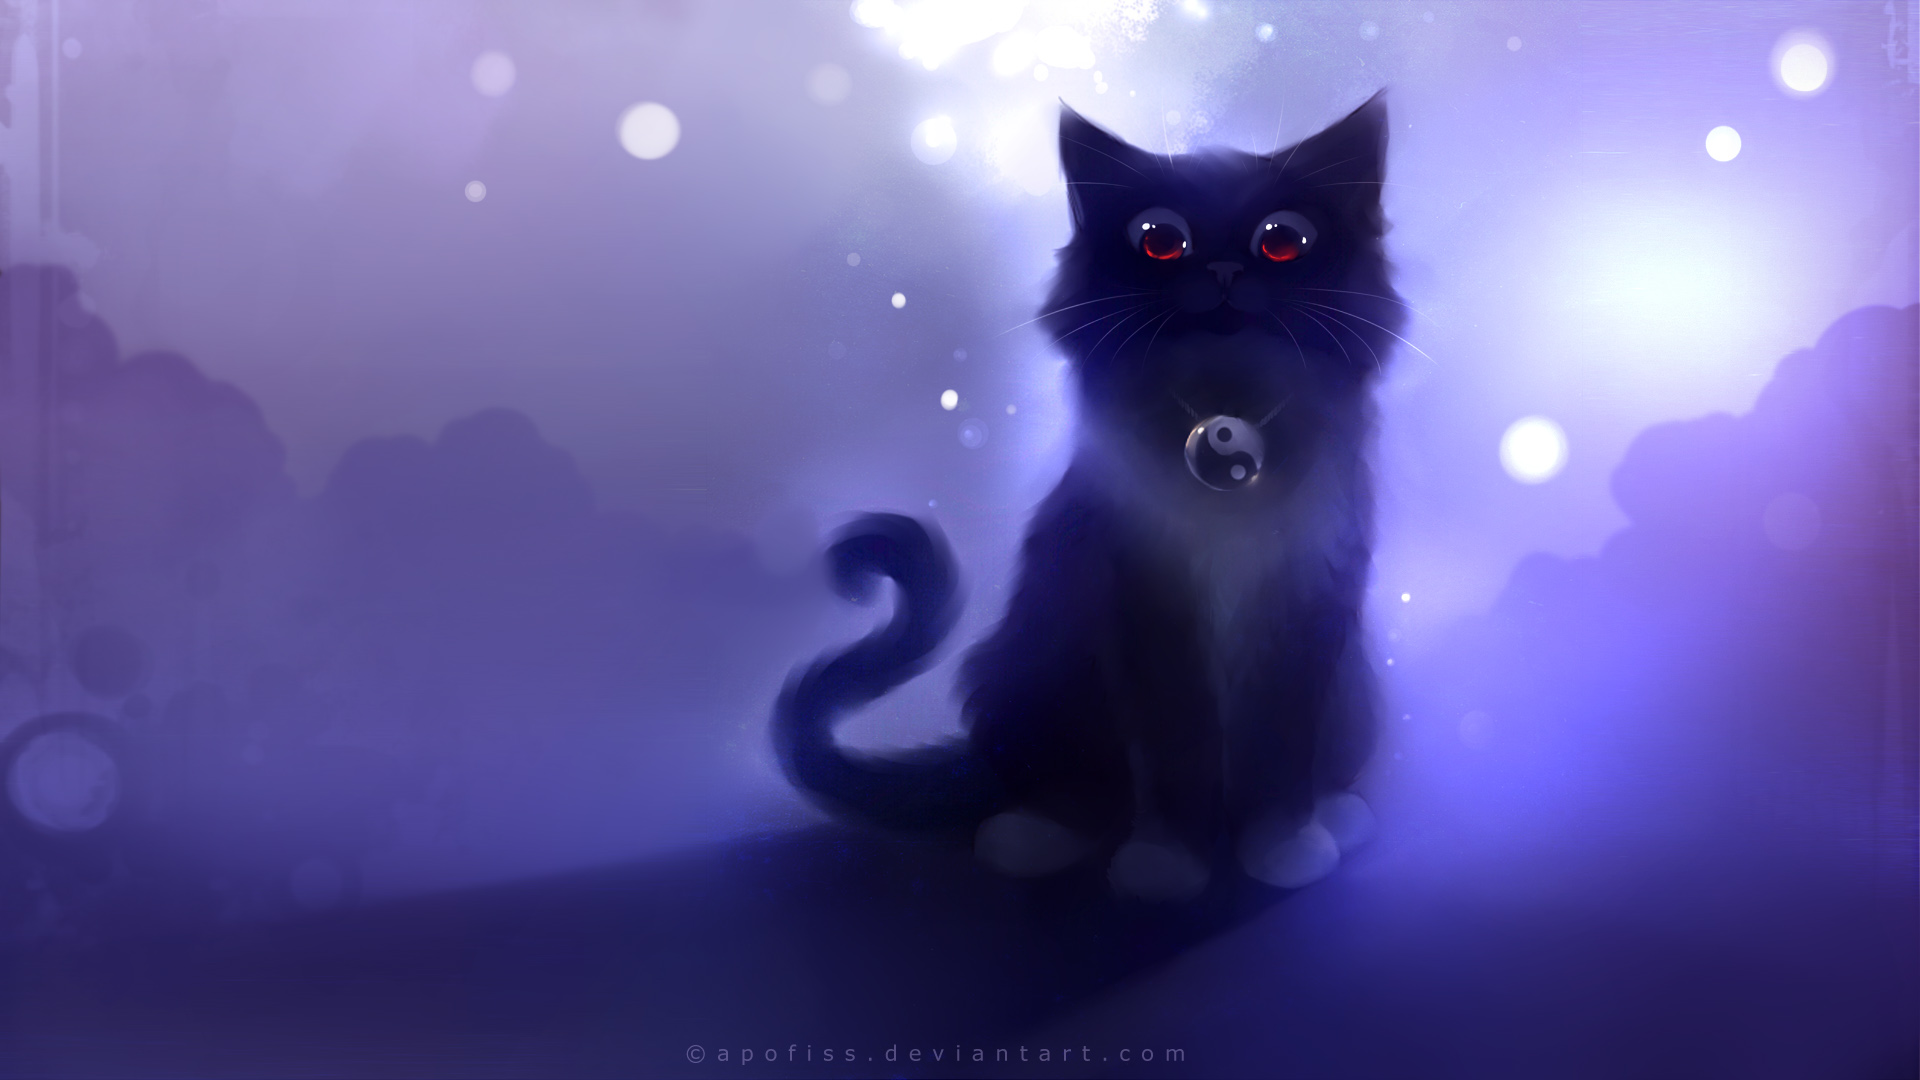 1920x1080 Download Wallpaper 1920x1080 Cat, Black, Drawing, Night, Apofiss